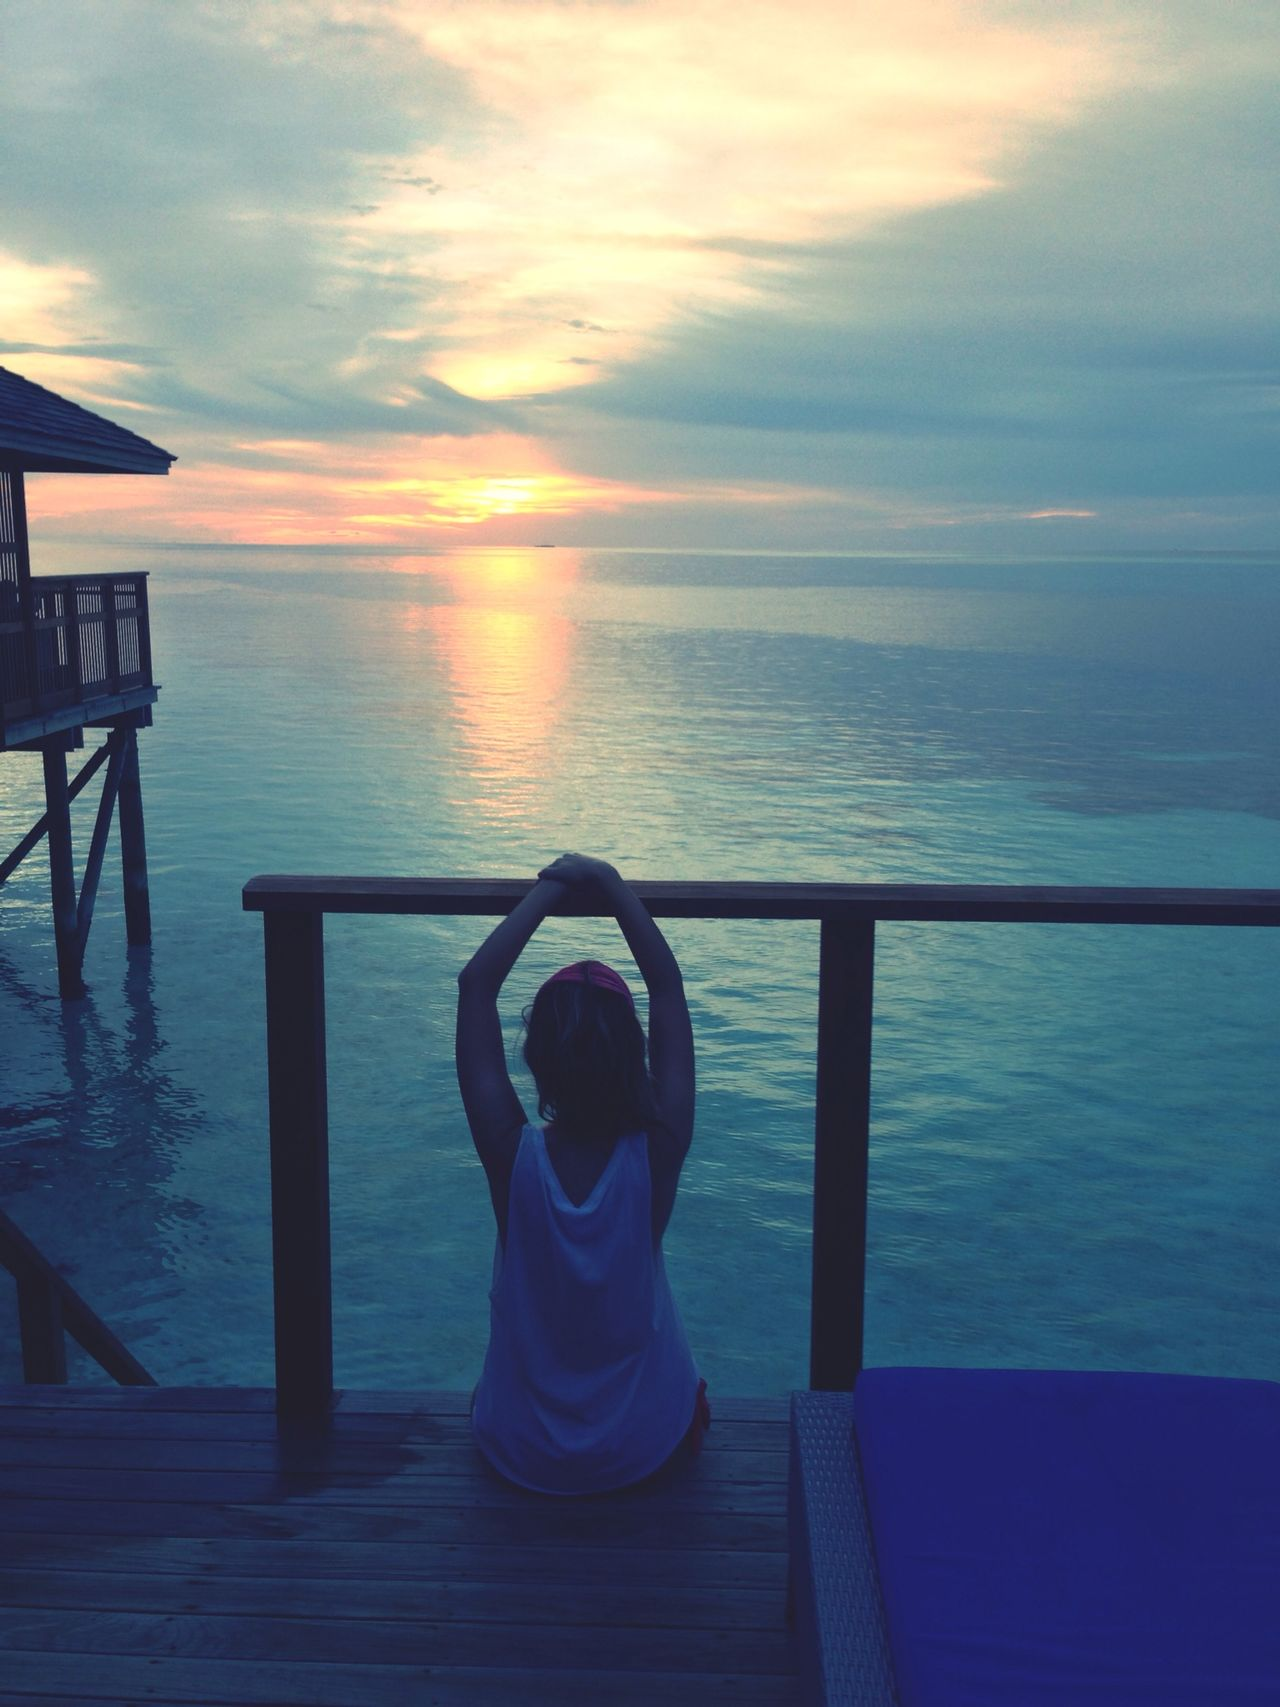 Relax take it easy. Ocean View Bungalow Sunset Silhouettes